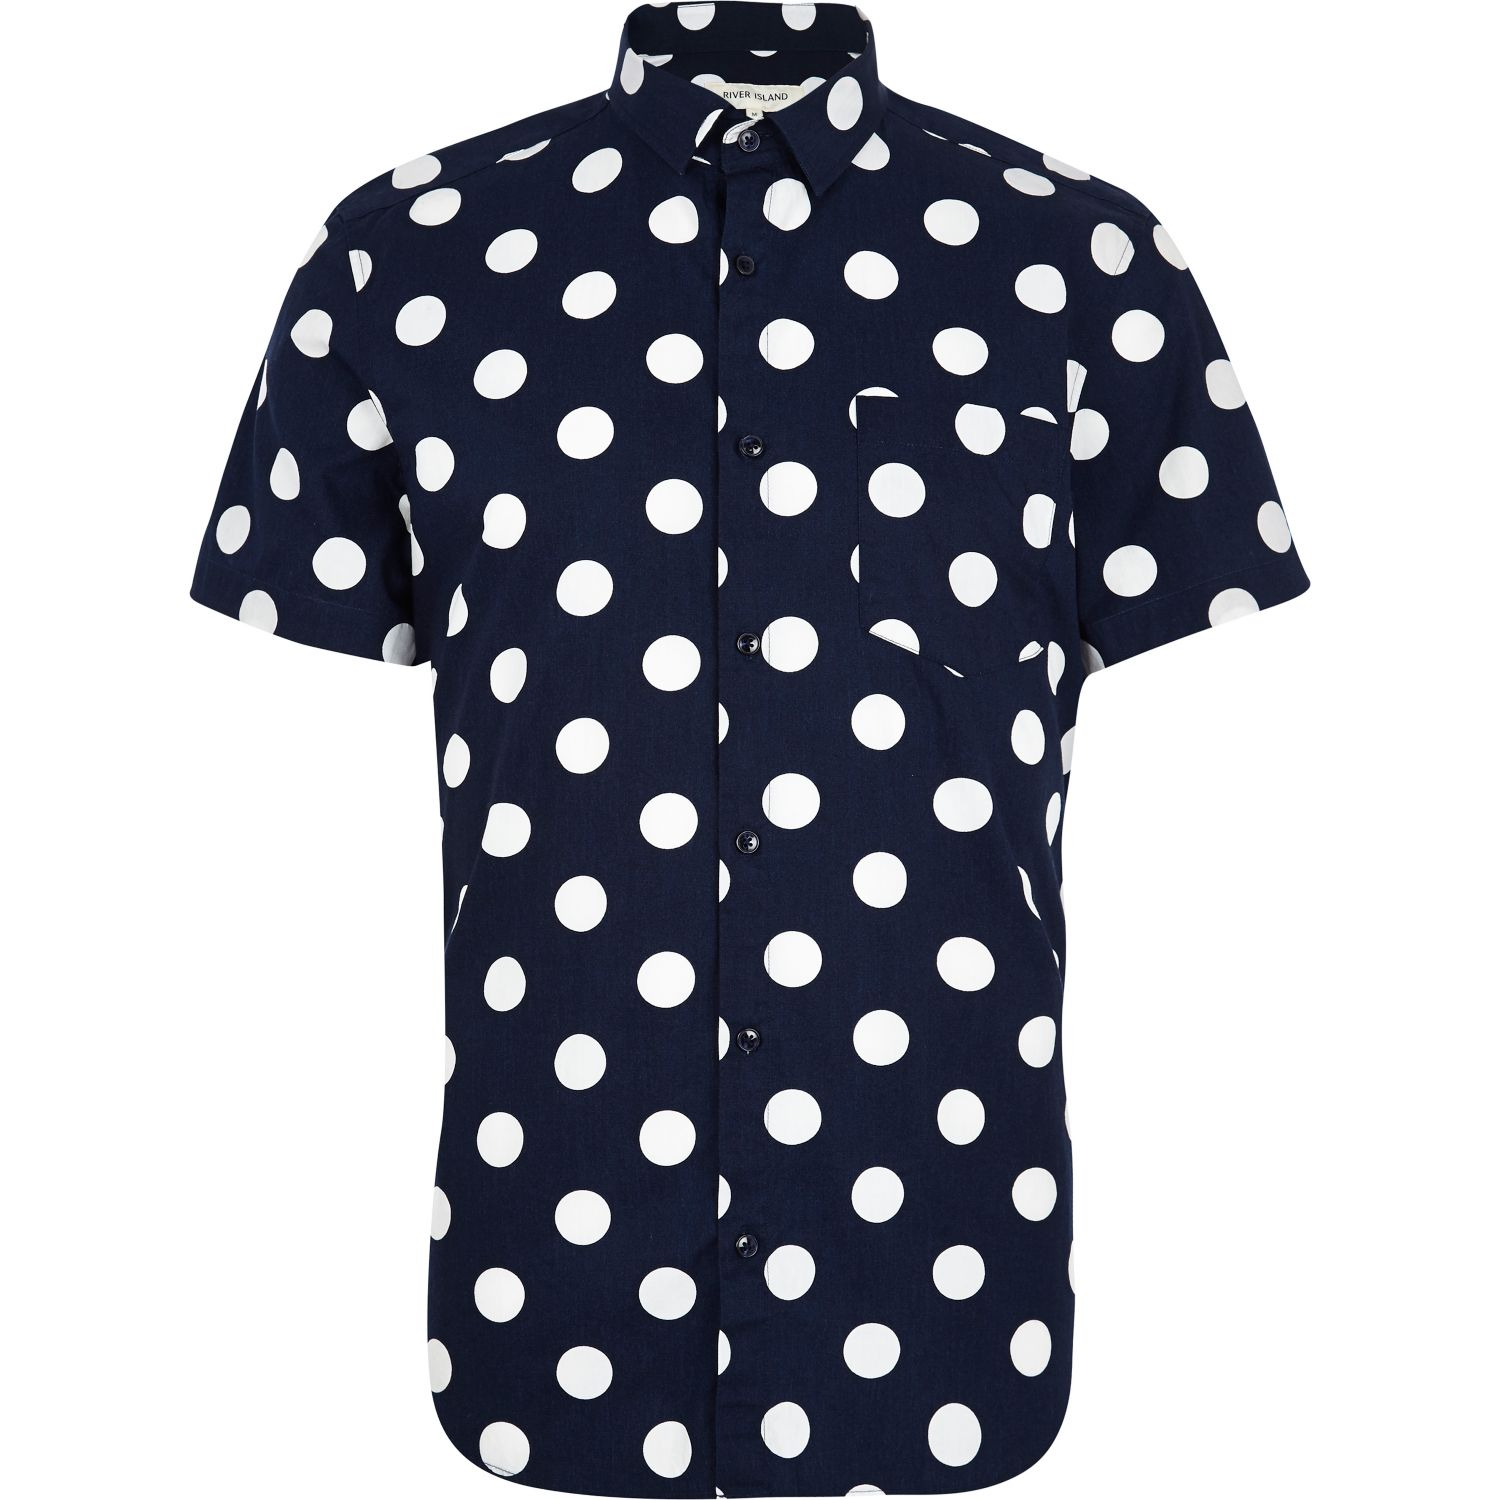 Skirt & Bodice are Navy Blue with Large White Polka Dot Print Wintialy Women Shirt, Big Promotion! Women's Bell Sleeve Loose Polka Dot Shirt Ladies Casual Blouse Tops.